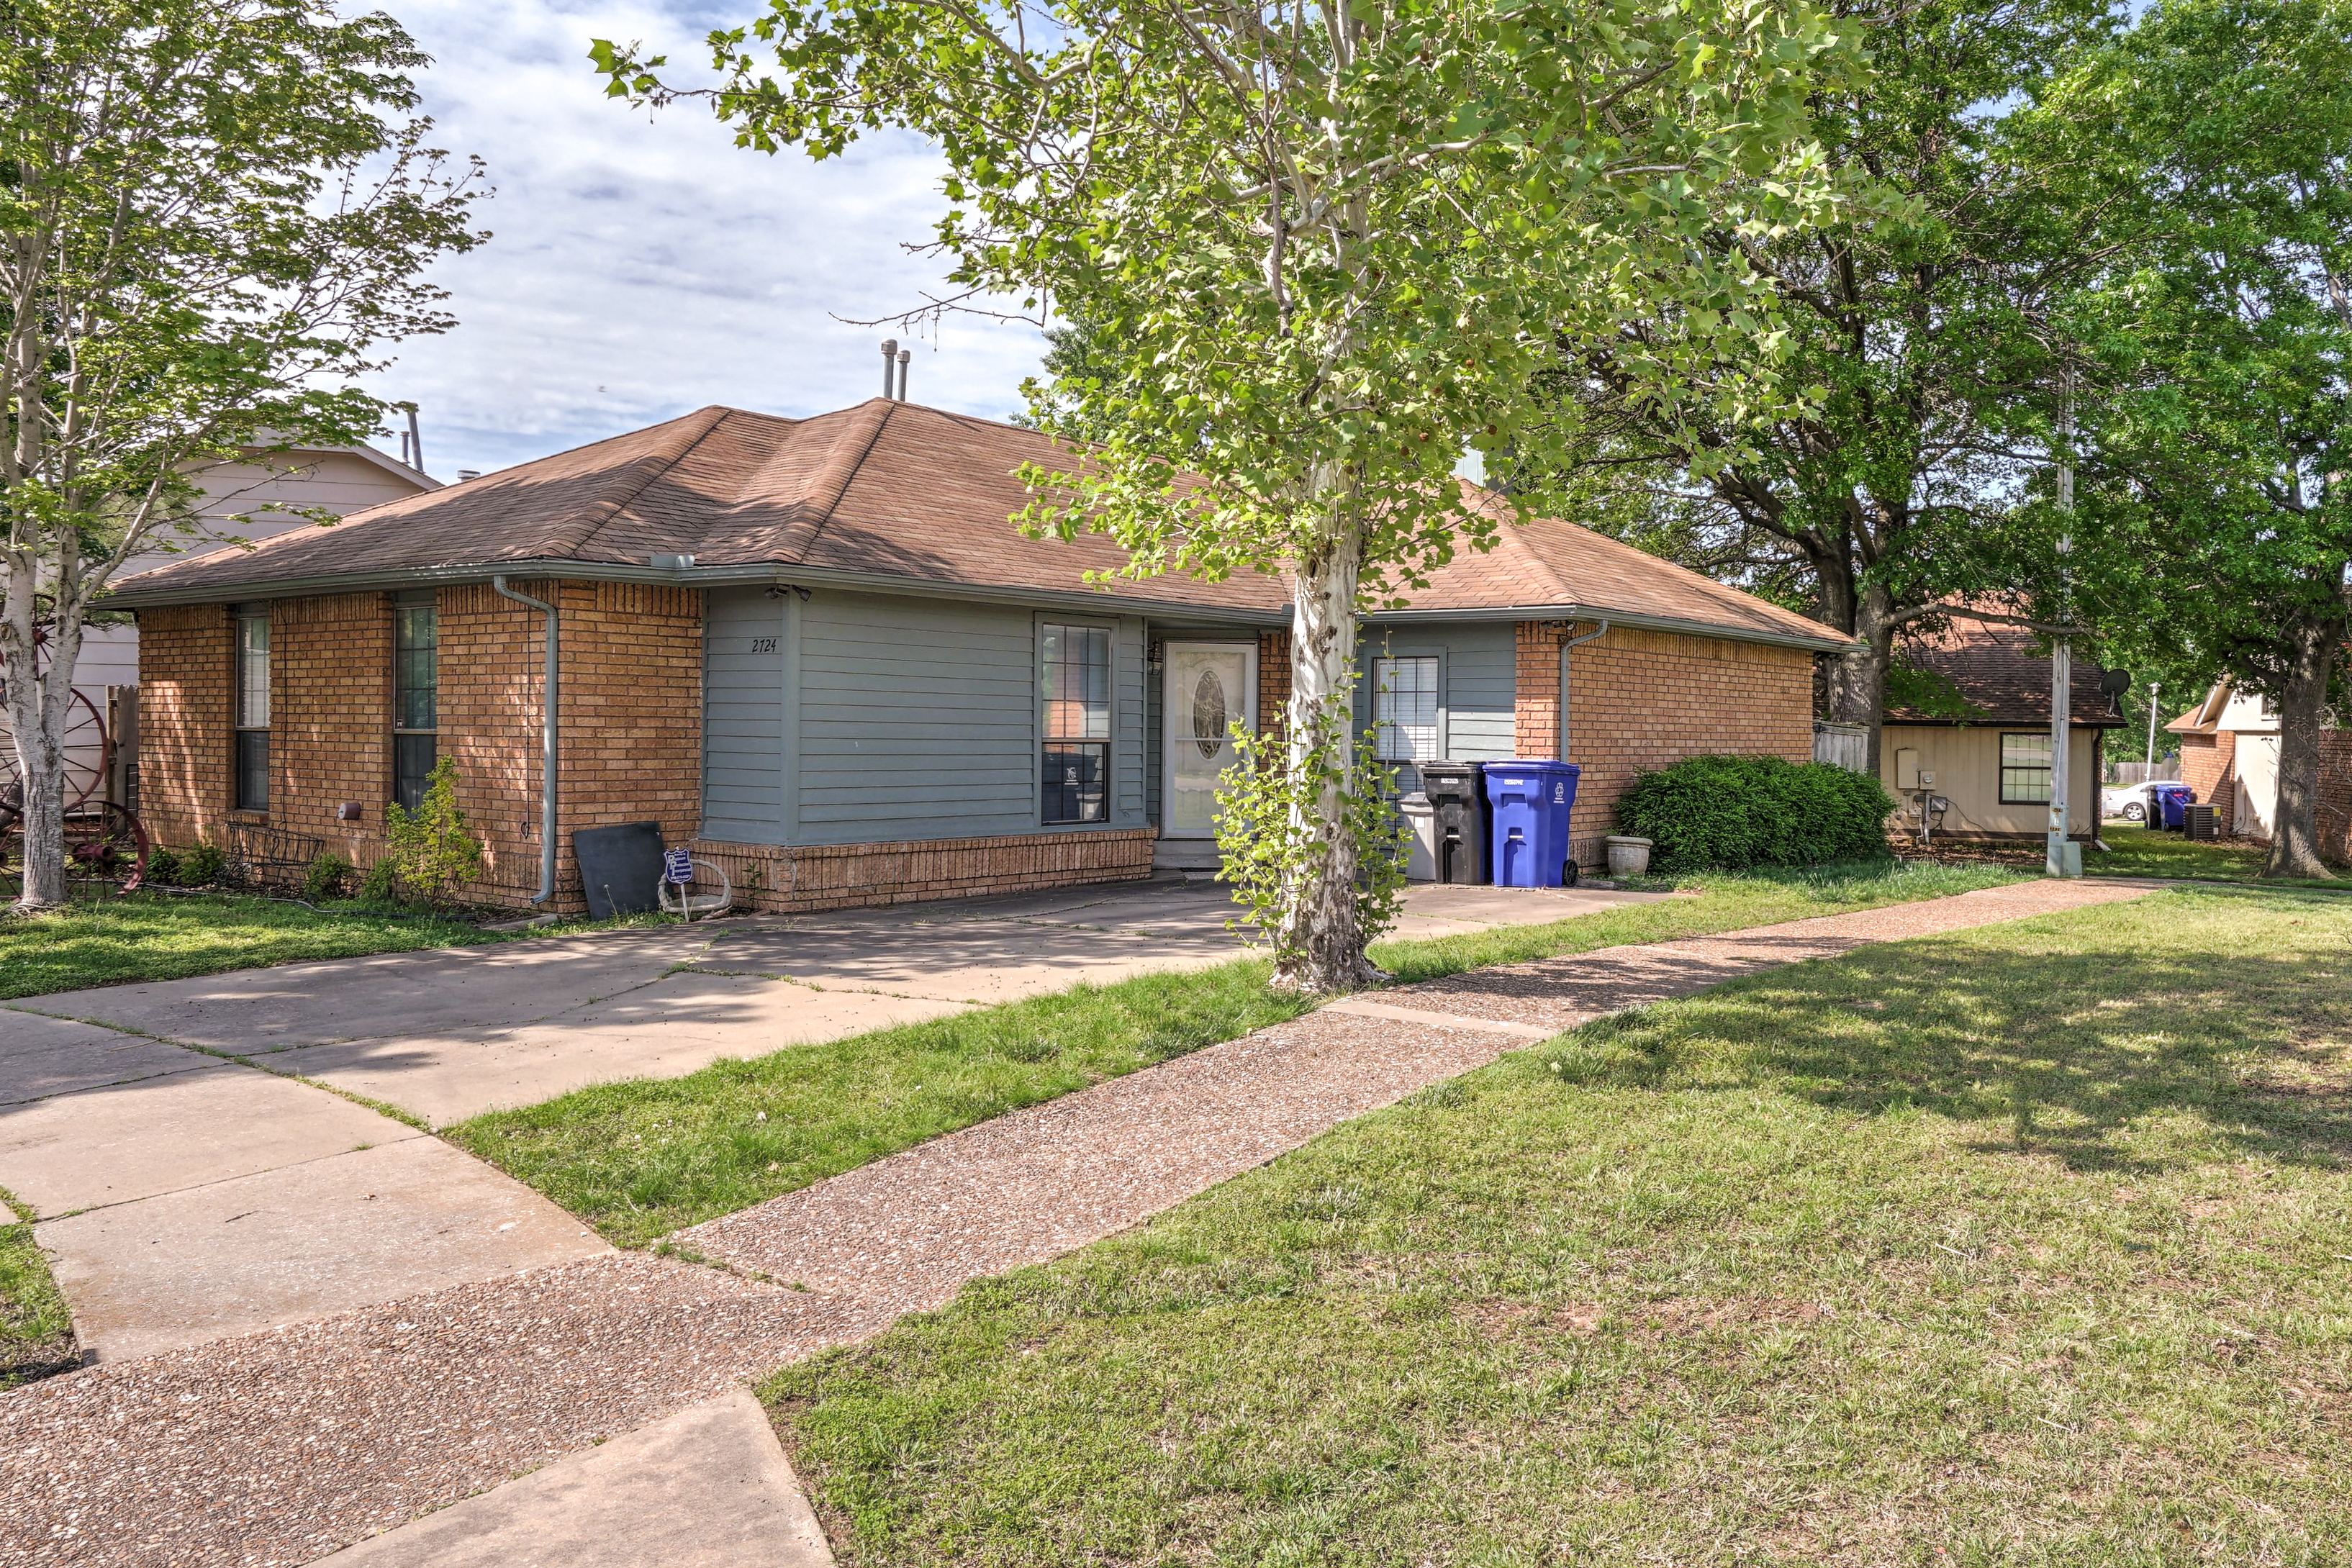 2724 S Narcissus Place Property Photo 1